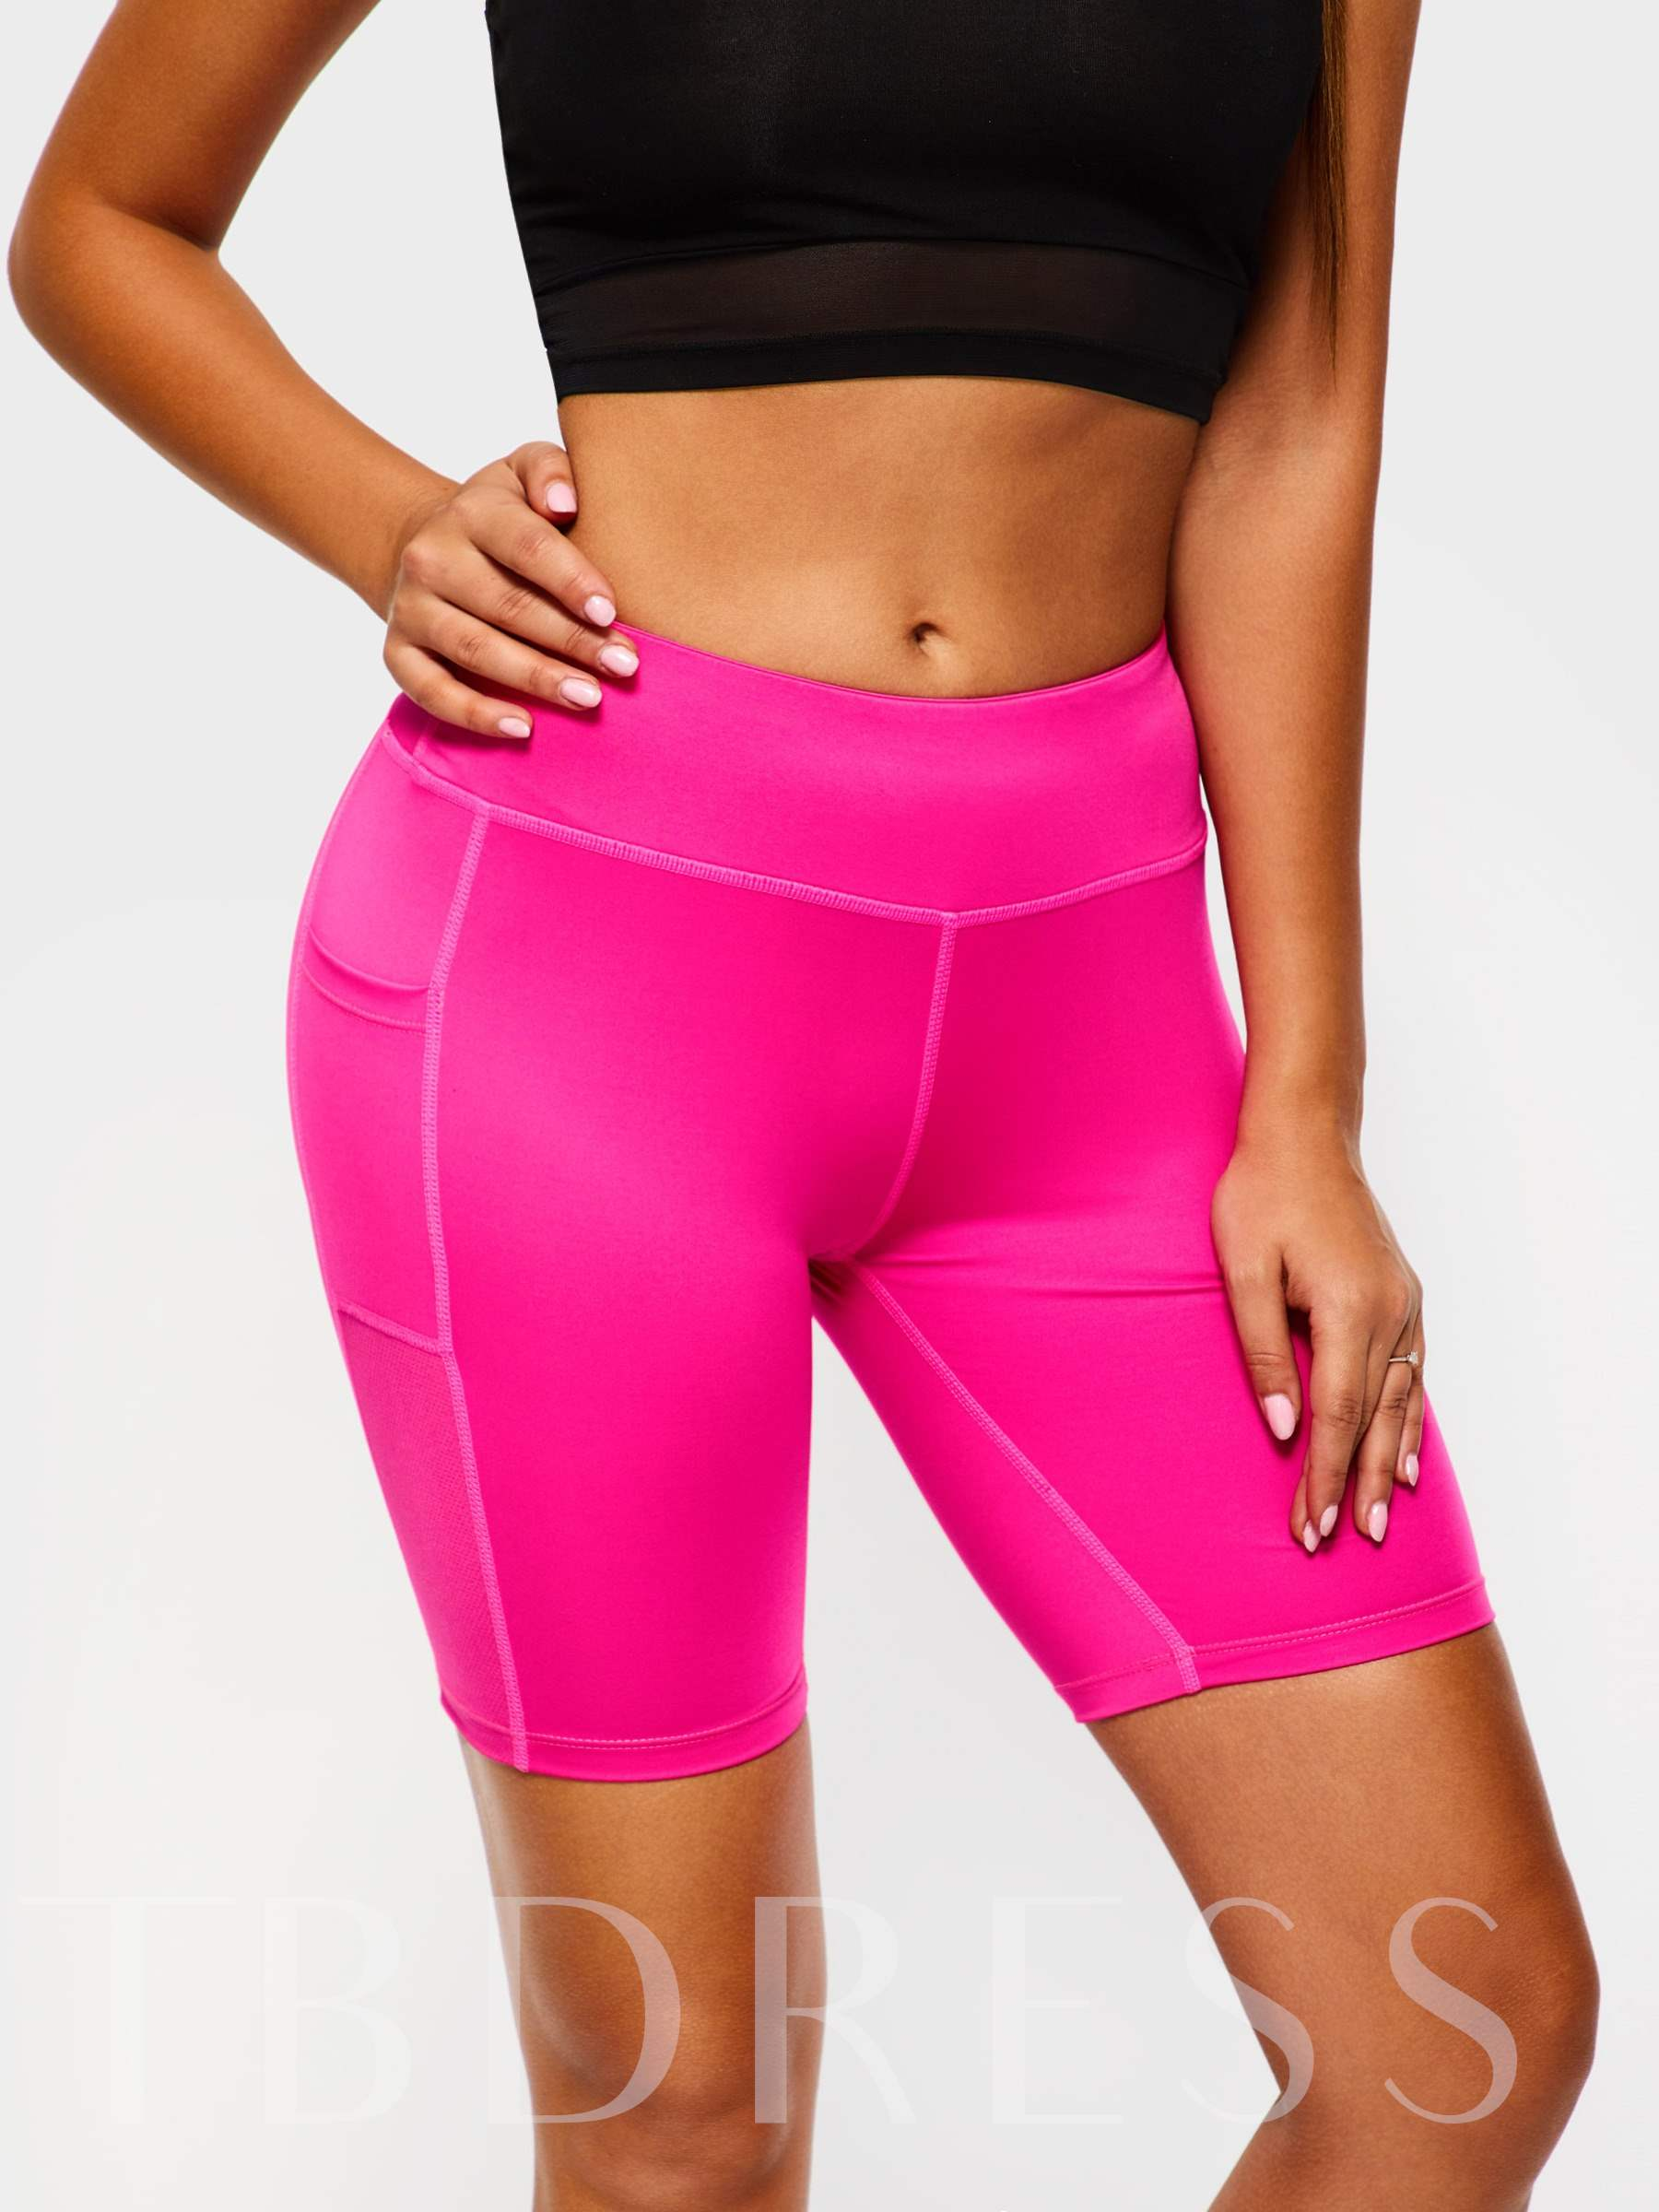 Pockets Anti-Sweat Women's Sports Shorts